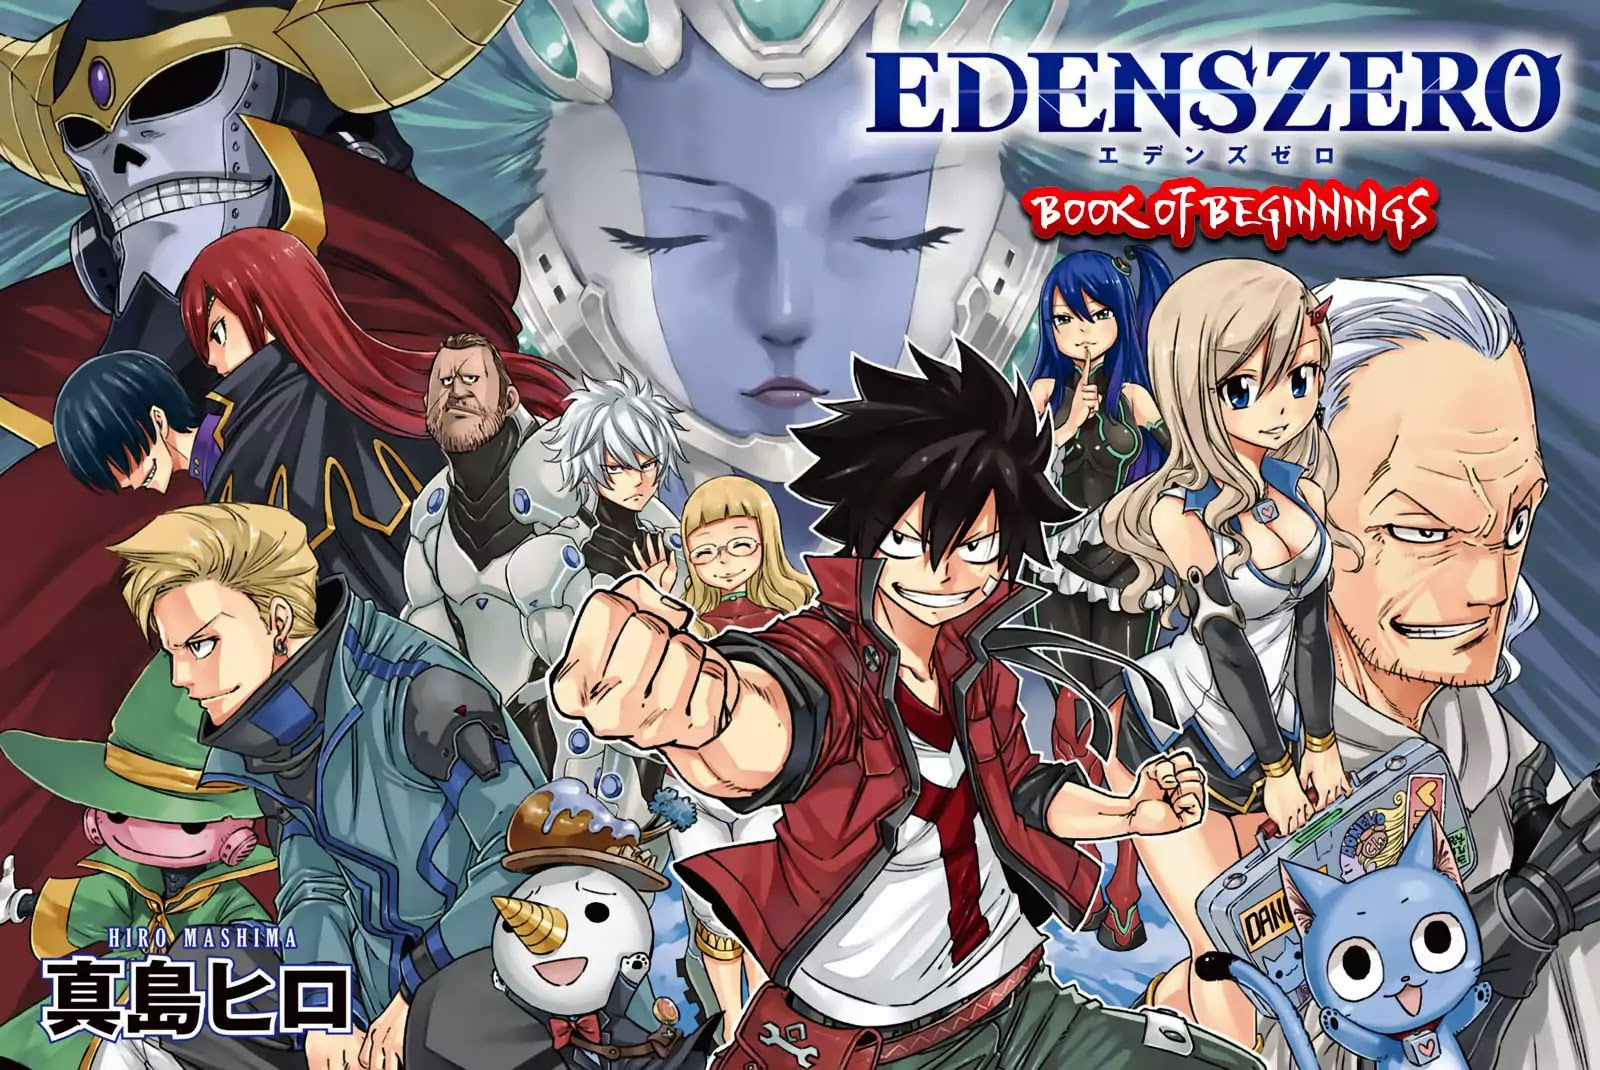 edens zero anime, edens zero game, edens zero characters, edens zero release date, edens zero trailer, edens zero wiki, edens zero anime announcement, edens zero anime adaptation release date, edens zero rebecca, shiki granbell, edens zero happy, edens zero 2, edens zero natsu and lucy, edens zero homura, edens zero shiki, edens zero rebecca ether gear, jessie edens zero, edens zero books, is edens zero good, edens zero fairy tail connection, fairy tail: 100 year quest myanimelist, rave master review, edens zero twitter, edens zero reddit, is eden zero connected to fairy tail, is eden zero good, eden zero shiki, elsie crimson, edens zero anime characters, edens zero game release date, rave master, fairy tail, mangadoctr, edens zero, volume 1, edens zero mangahelpers, shiki edens zero, homura edens zero, edens zero, edens zero manga, rebecca edens zero, reddit edens zero, edens zero mangahelper, edens zero manga online, hiro mashima edens zero, edens zero review, edens zero 11, xiaomei edens zero, hiro mashima edens zero 1, edens zero 65, edens zero volume 1, edens zero volume 8, edens zero vol 6, edens zero 2 hiro mashima, edens zero amazon, edens zero hiro mashima, edens zero volume, edens zero manga free, edens zero volume 10, edens zero vol 7, edens zero crunchyroll, edens zero manga 1, edens zero volume 11, manga eden's zero, edens 0, edens zero volume 5, edens zero volume 2, edens zero mangareader, nino edens zero, edens zero 12, figurine edens zero, edens one edens zero, rebecca edens, edens zero volume 4, crunchyroll edens zero, edens zero panini, edens zero 60, edens zero vol 12, read edens zero, edens zero read, edens zero 106, edens zero read online, fairy tail edens zero, edens zero 84, edens zero 98, edens zero 85, edens zero 91, read edens zero online, edens zero 86, manga edens zero, edens zero manga read, edens zero 75, edens zero 113, eden zero mangahelper, read edens zero manga, eden zero fairy tail, edens zero manga read online, read eden zero mang